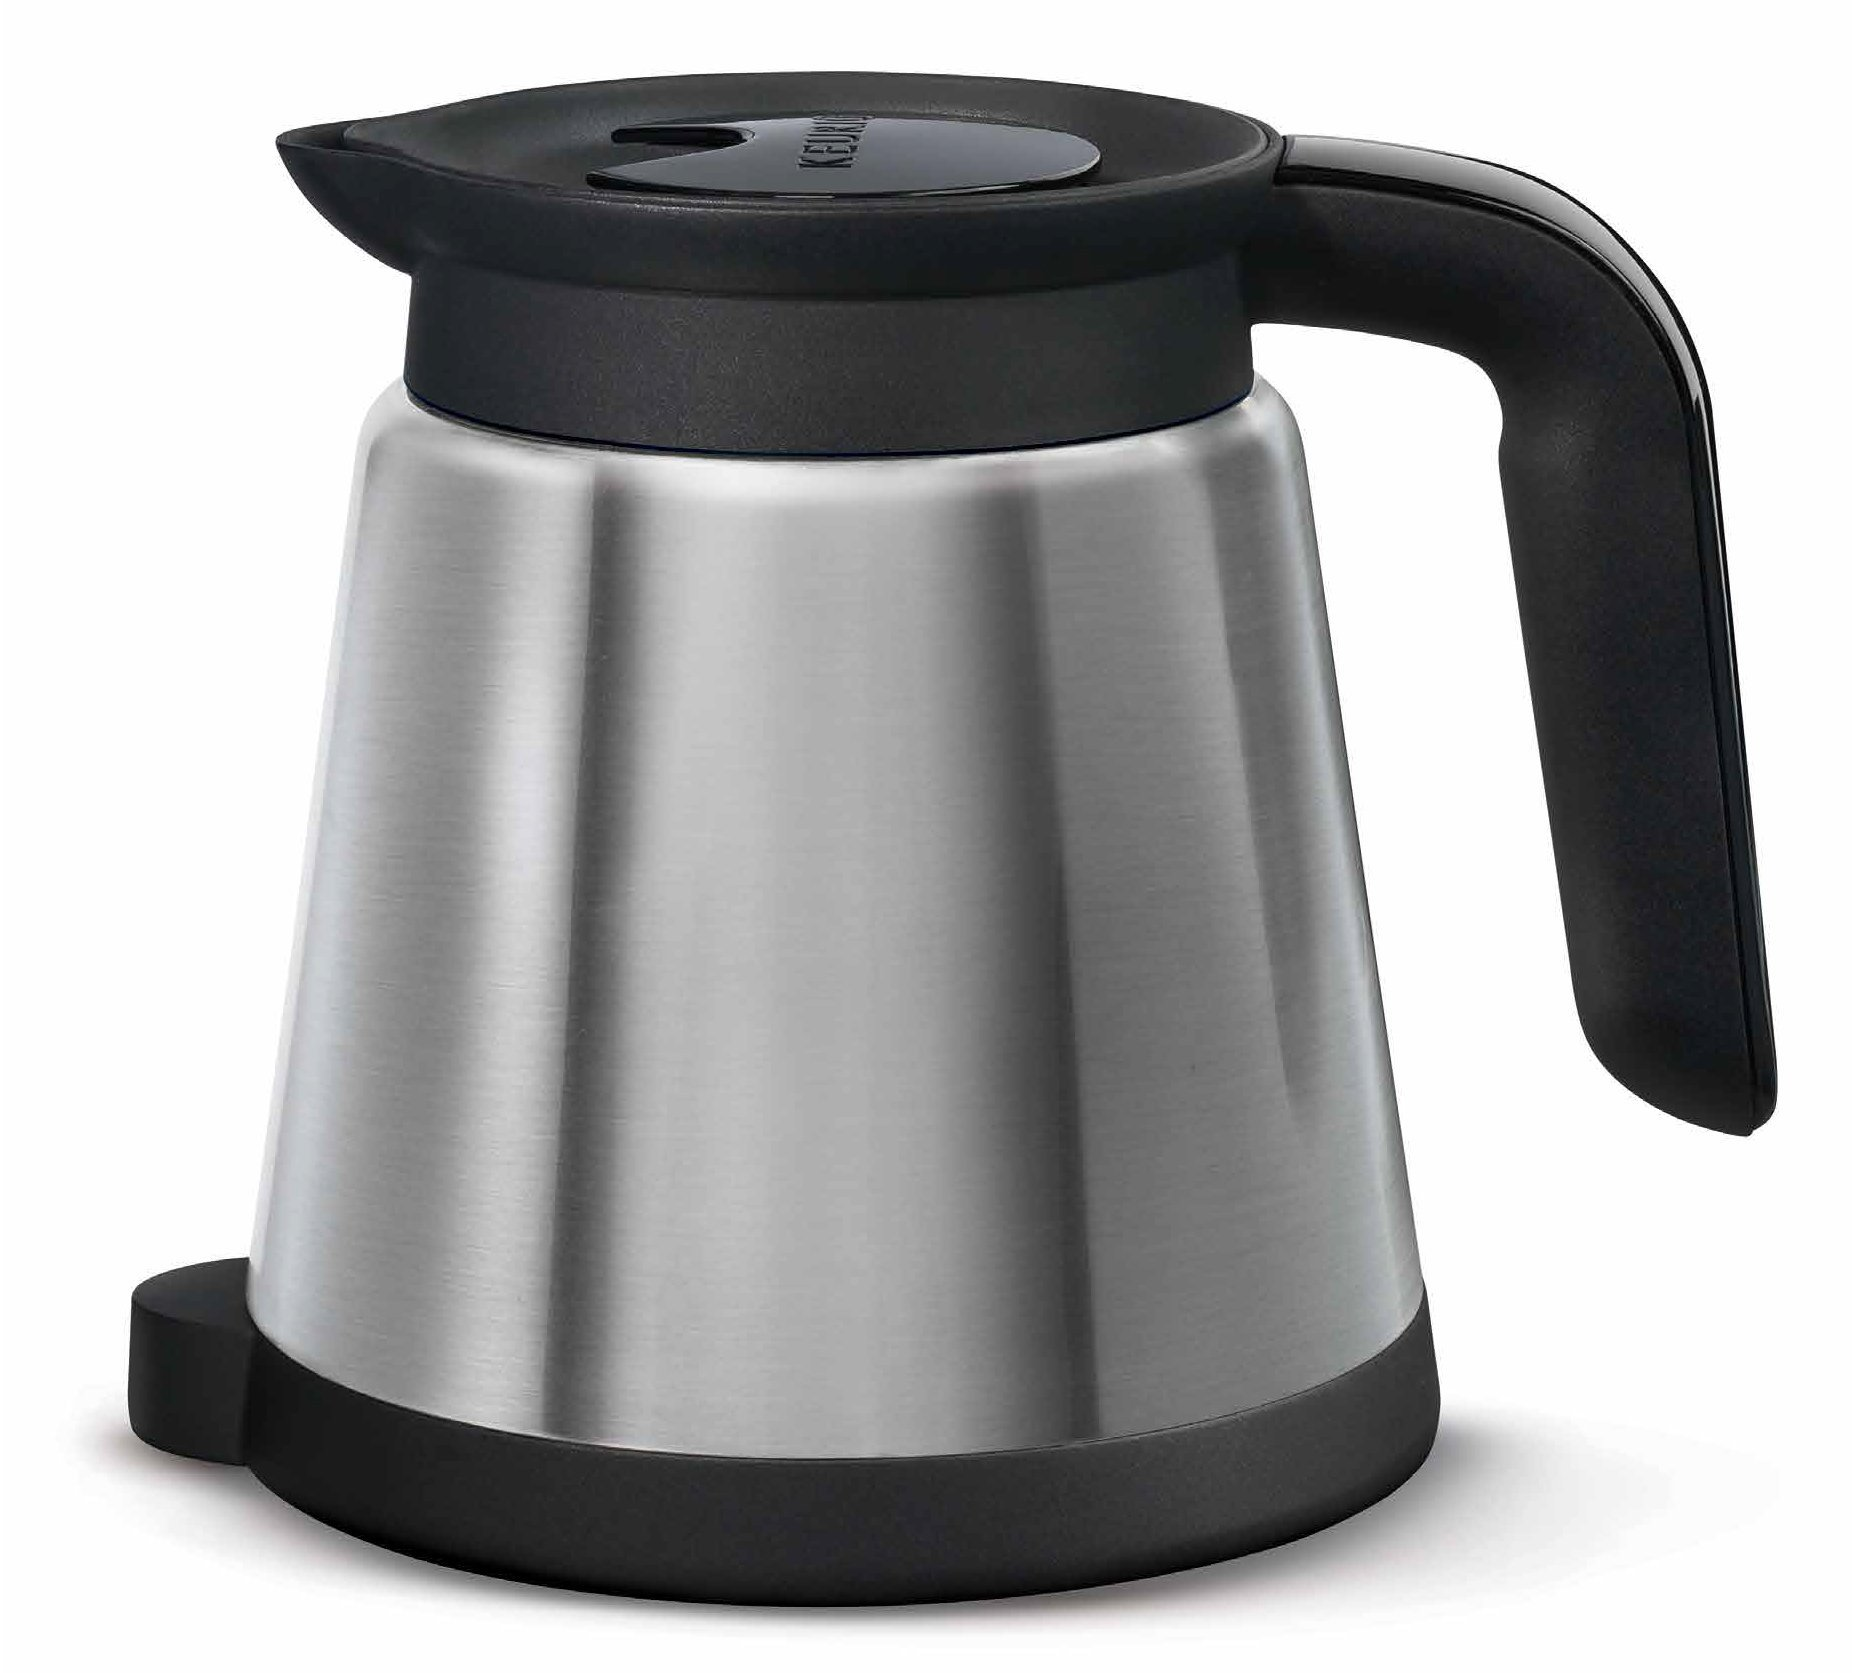 keurig 2 0 thermal carafe 32oz double walled vacuum insulated stainless steel carafe holds. Black Bedroom Furniture Sets. Home Design Ideas